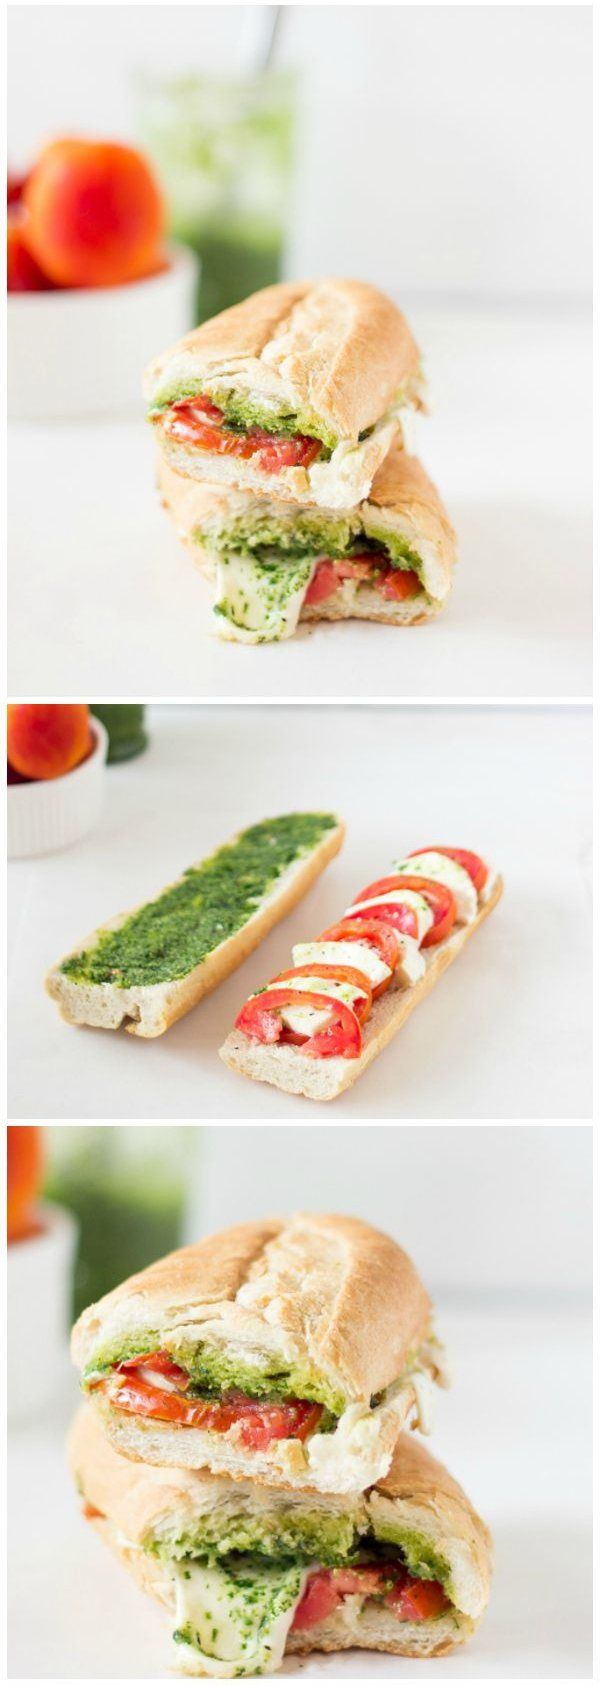 Sandwich Caprese Sandwich The post Caprese Sandwich appeared first on Woman Casual. TheCaprese Sandwich The post Caprese Sandwich appeared first on Woman Casual. Vegetarian Recipes, Cooking Recipes, Healthy Recipes, Vegetarian Cooking, Going Vegetarian, Vegetarian Dinners, Best Vegetarian Sandwiches, Pasta Recipes, Healthy Pesto